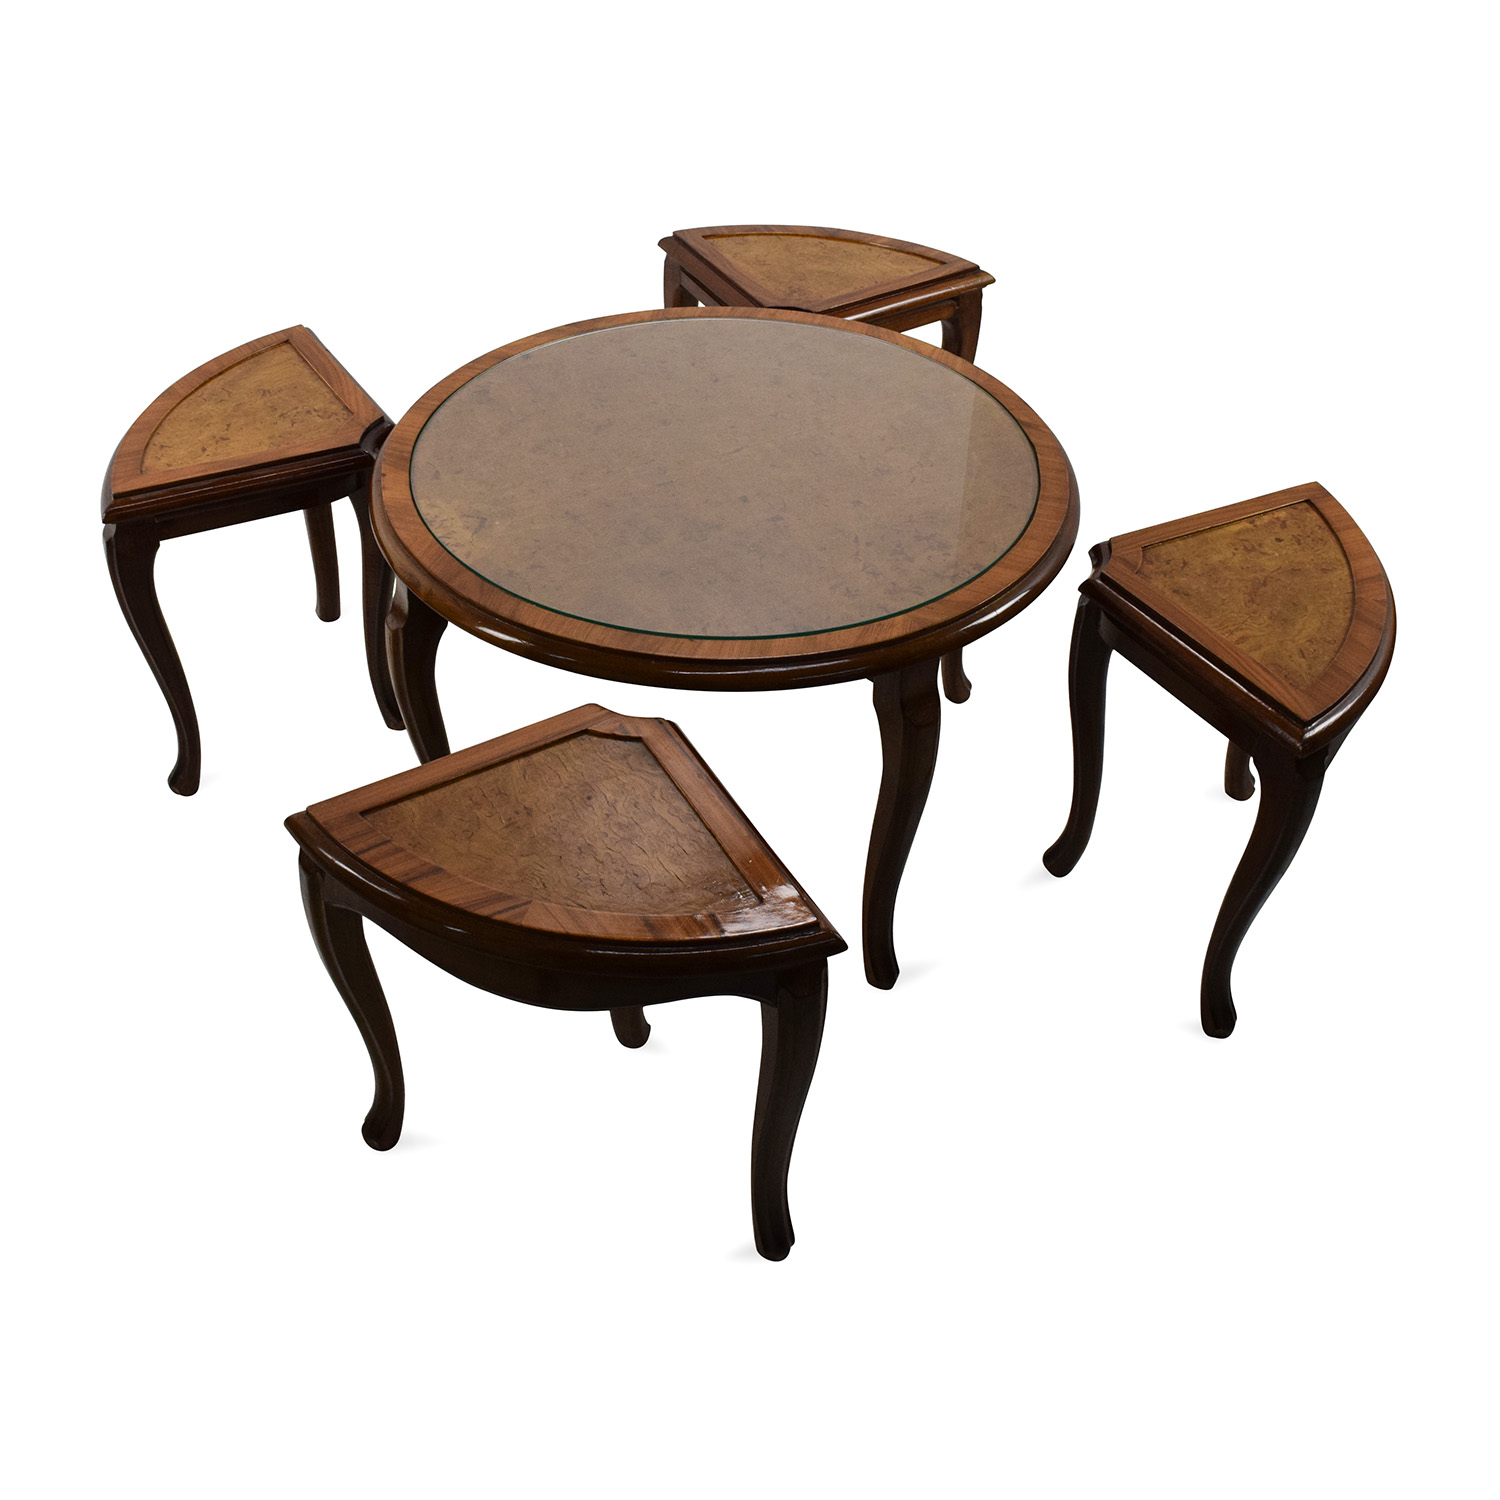 Round Glass Top Coffee Table with 4 Nesting Stools Brown